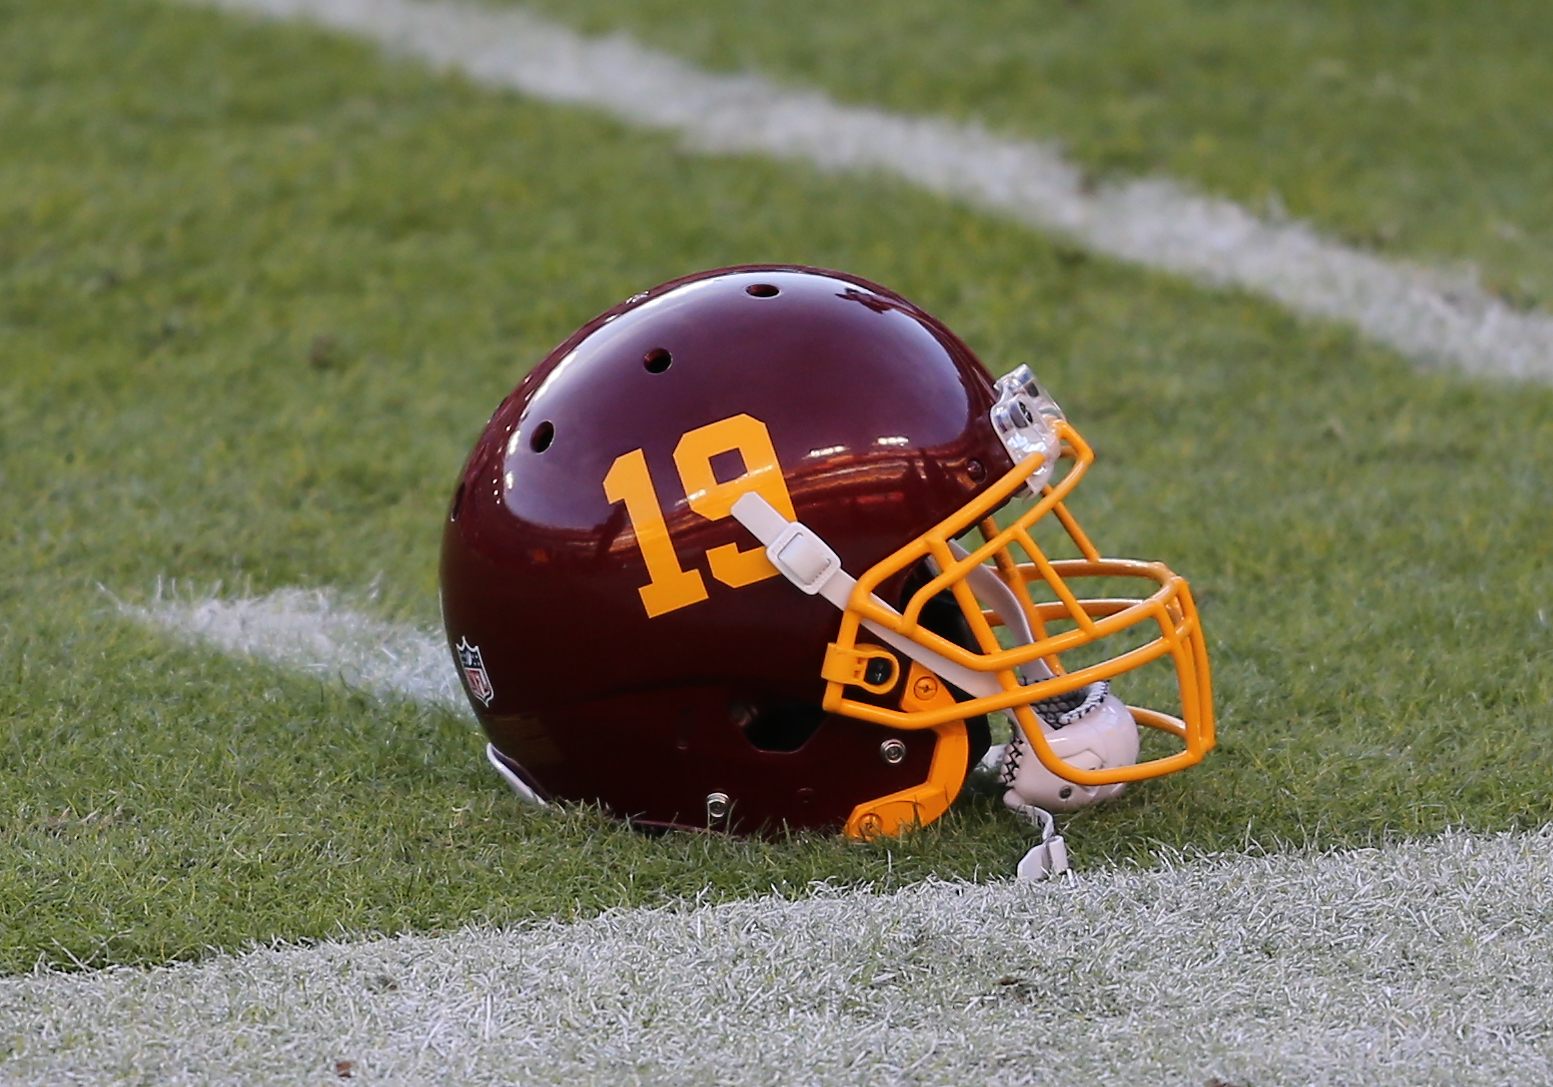 Stay the course, Washington. Stick with Football Team or go with Football Club as the team's nickname.